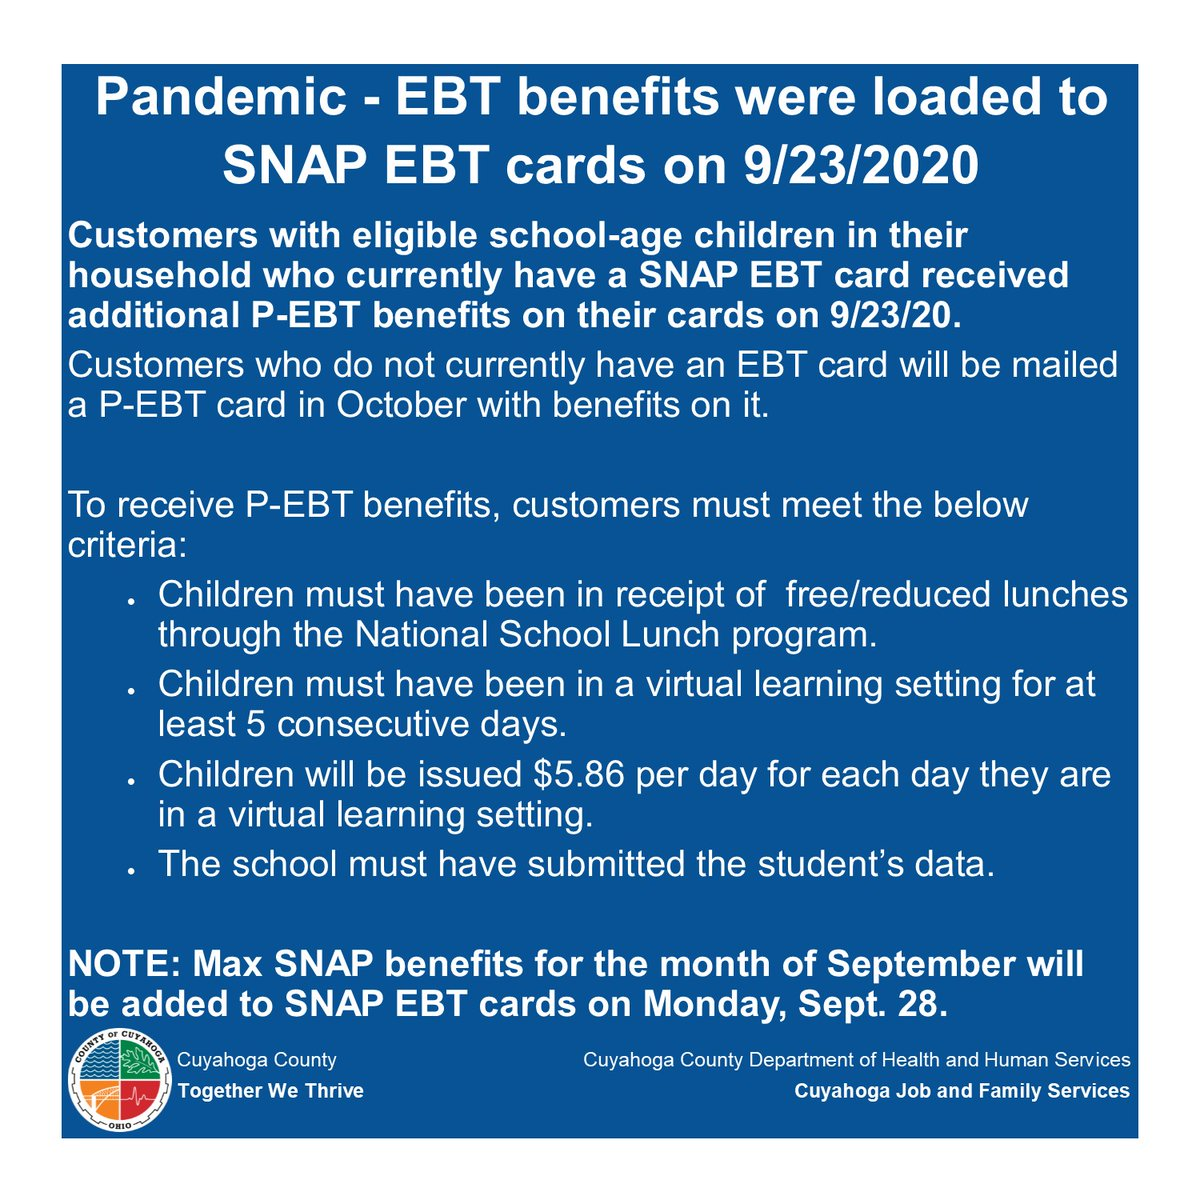 P-EBT benefits isssued to customers with SNAP EBT cards were automatically loaded onto the cards on 9/23/2020 by the state of Ohio. More information is posted here: